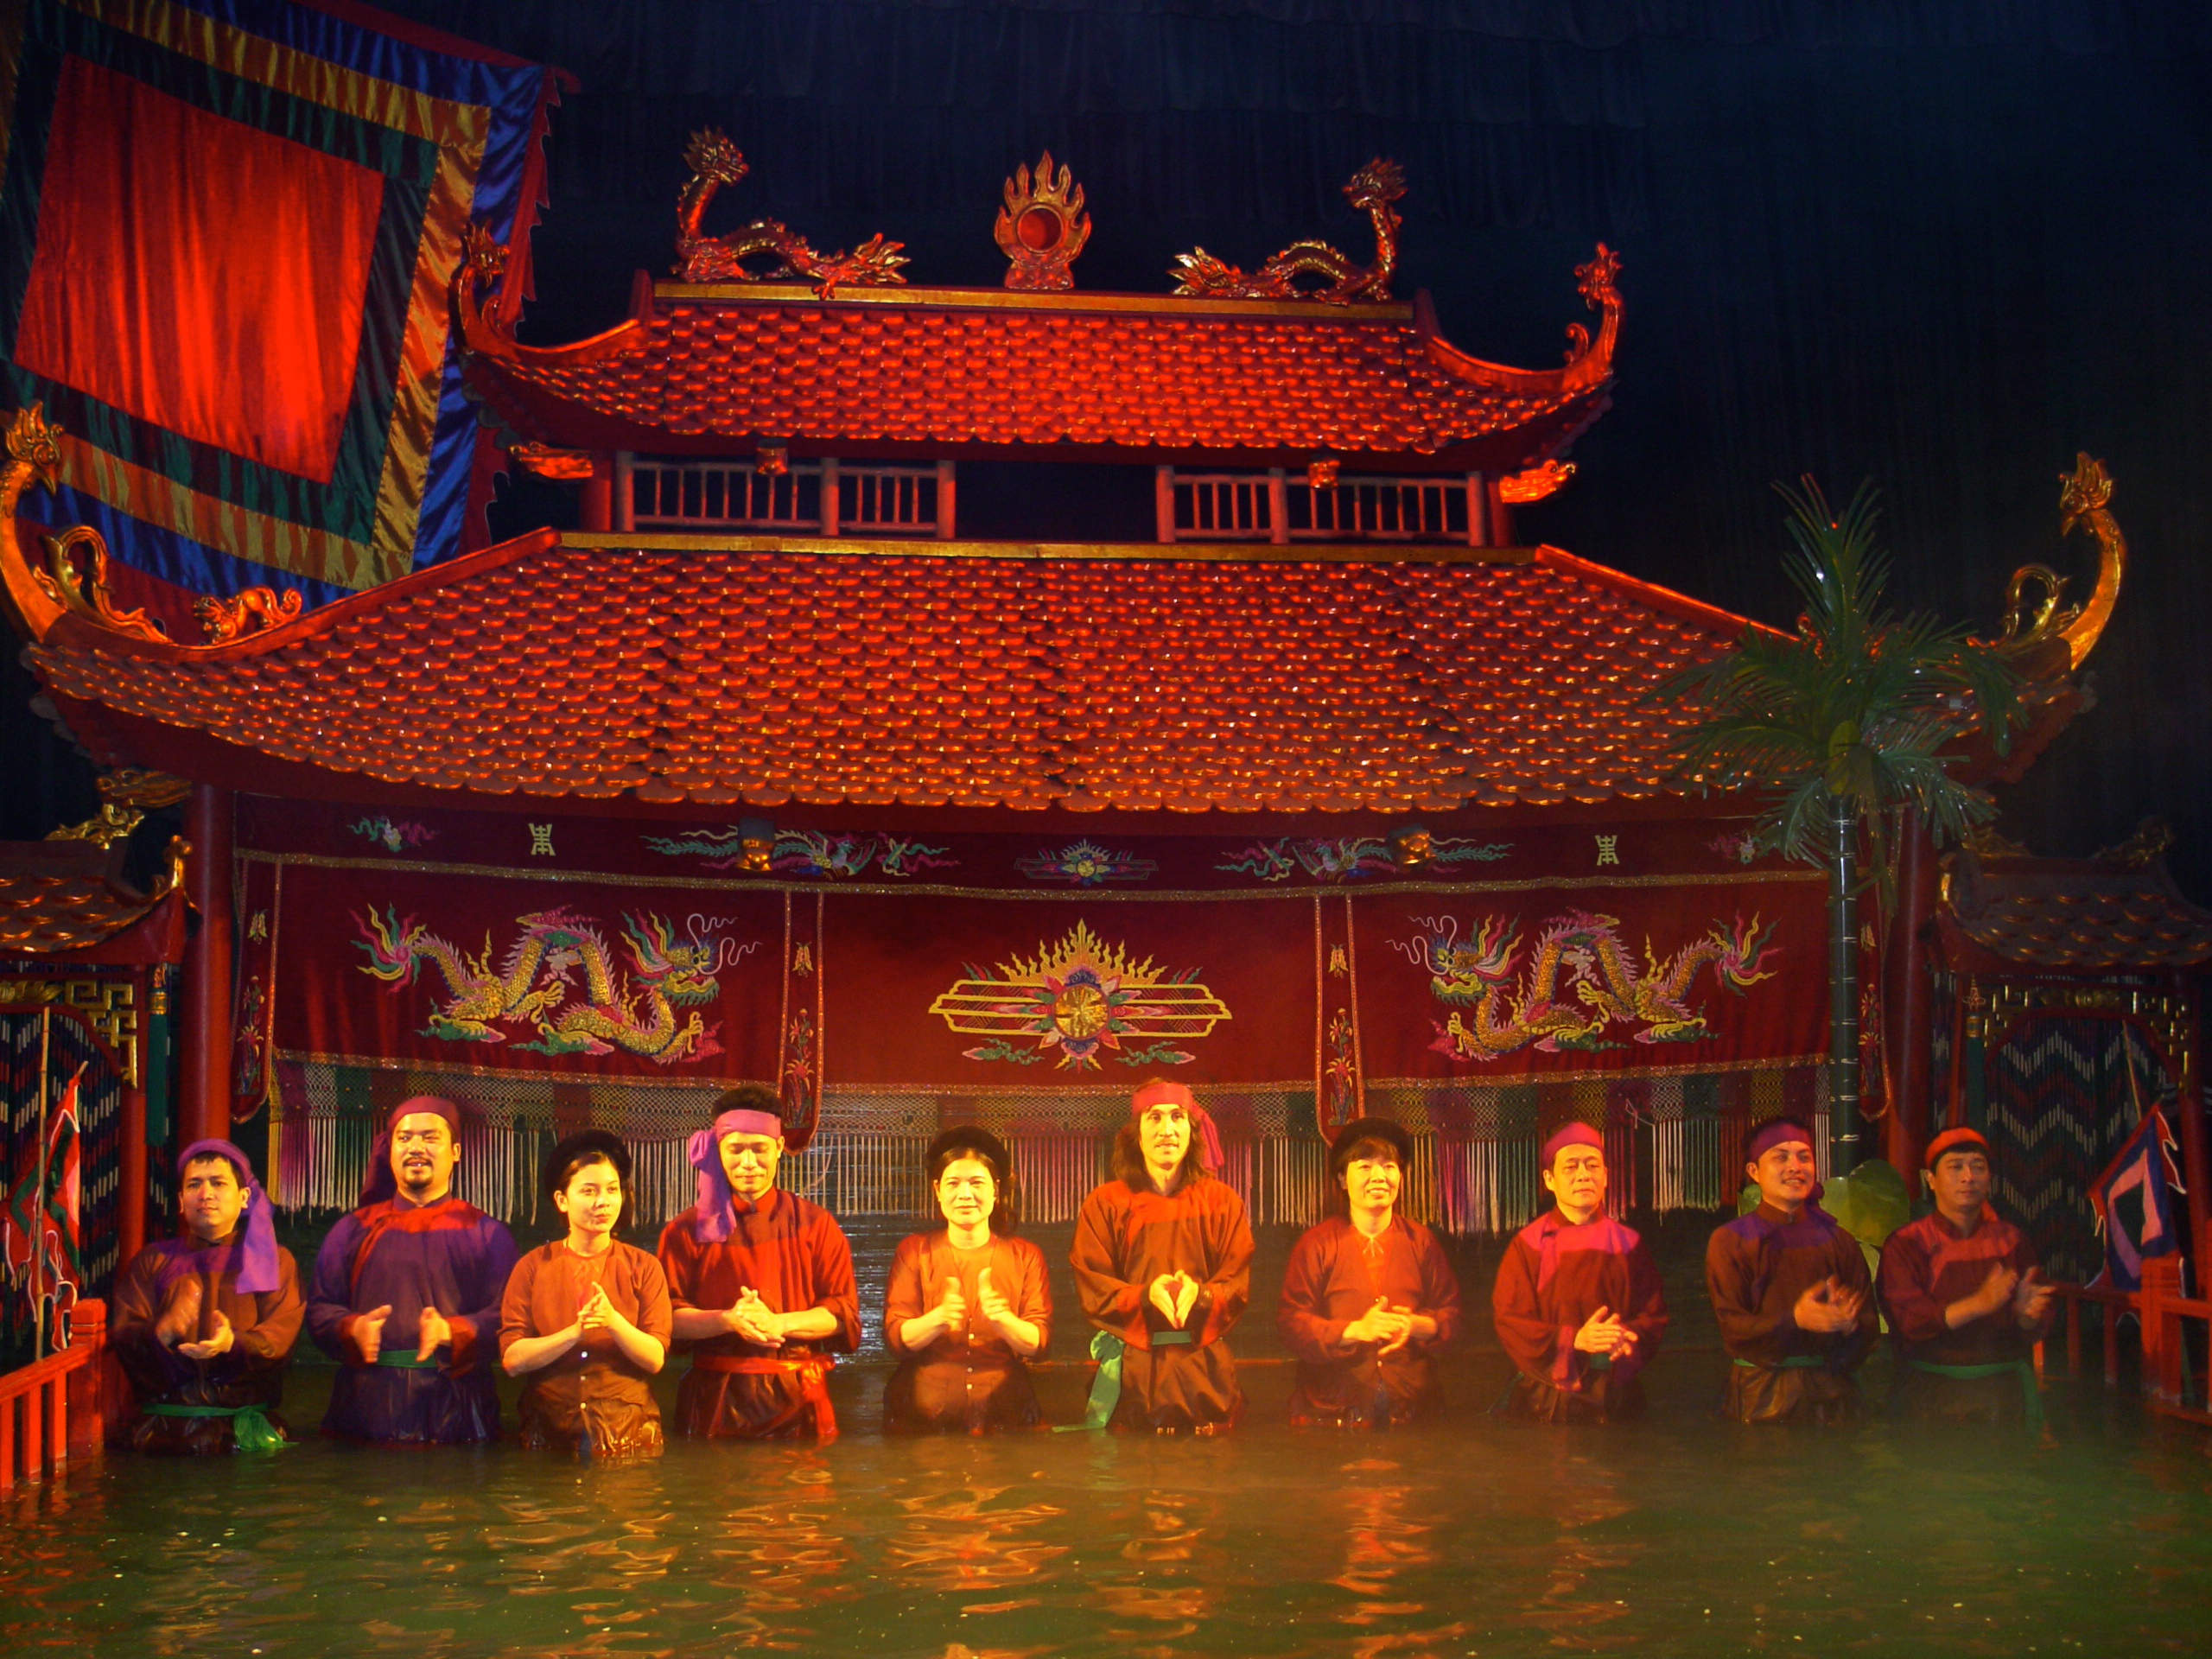 Vietnamese Theater: The Water Puppet Show in Hanoi - Thang Long Water Puppet Theatre